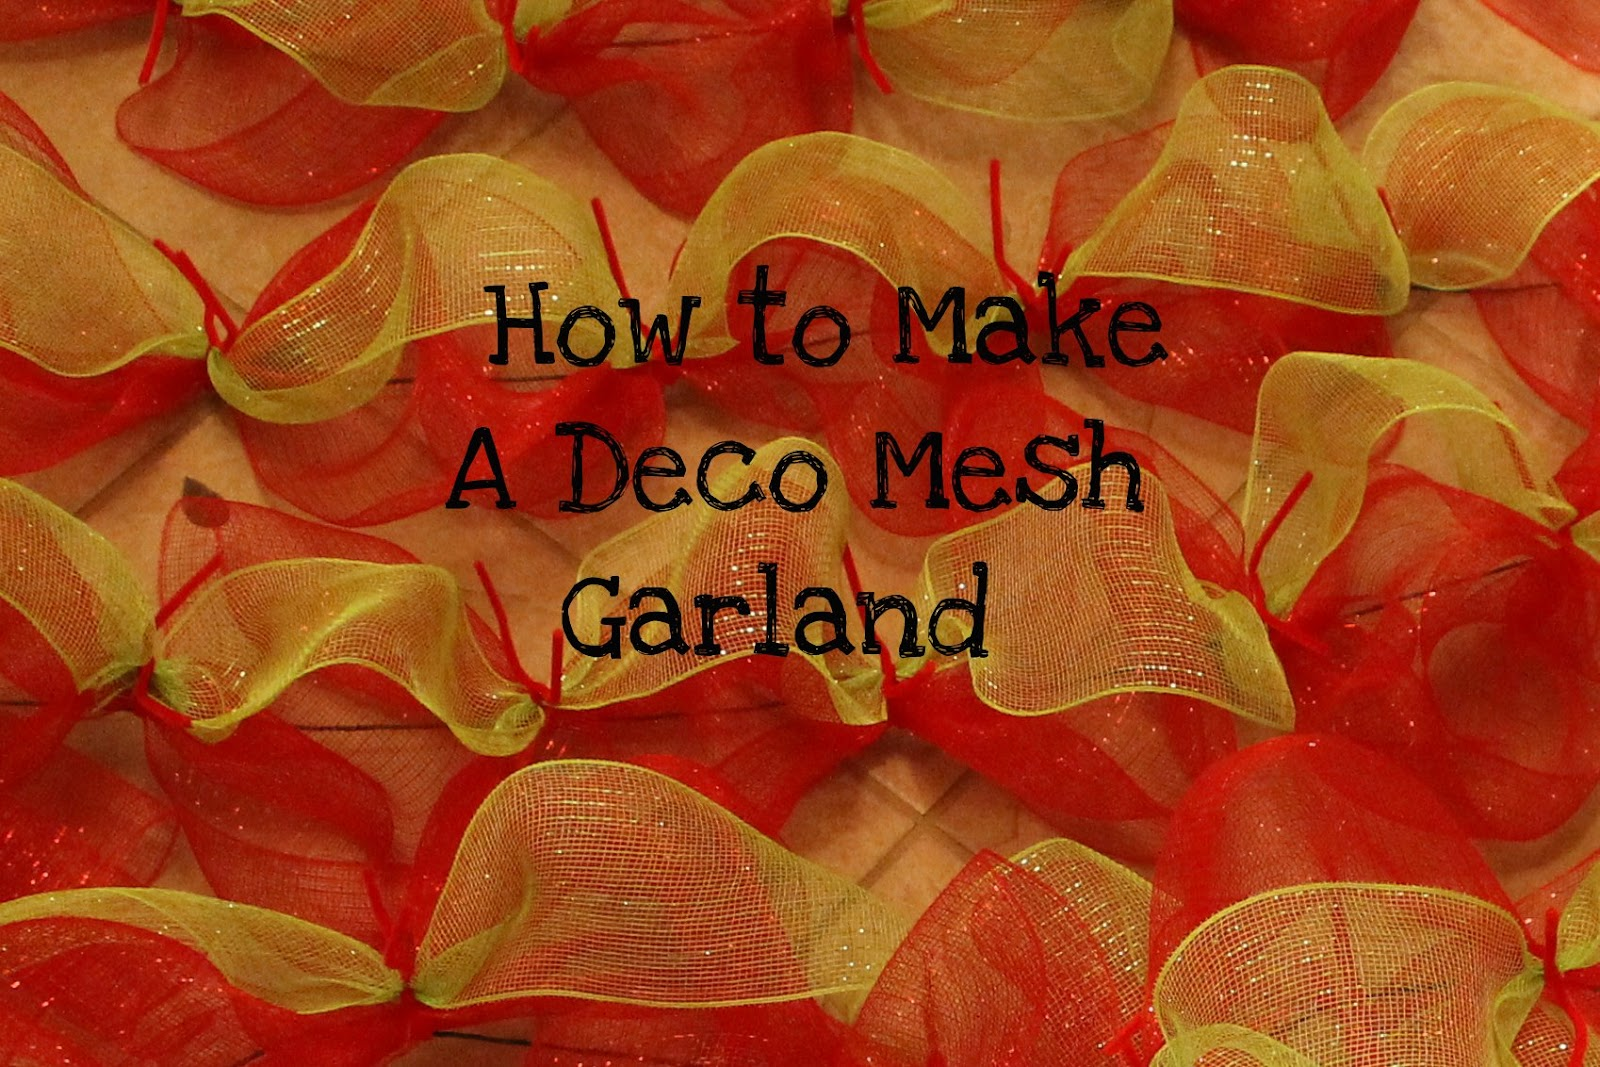 how to make a deco mesh garland miss kopy kat - How To Decorate A Staircase For Christmas With Deco Mesh